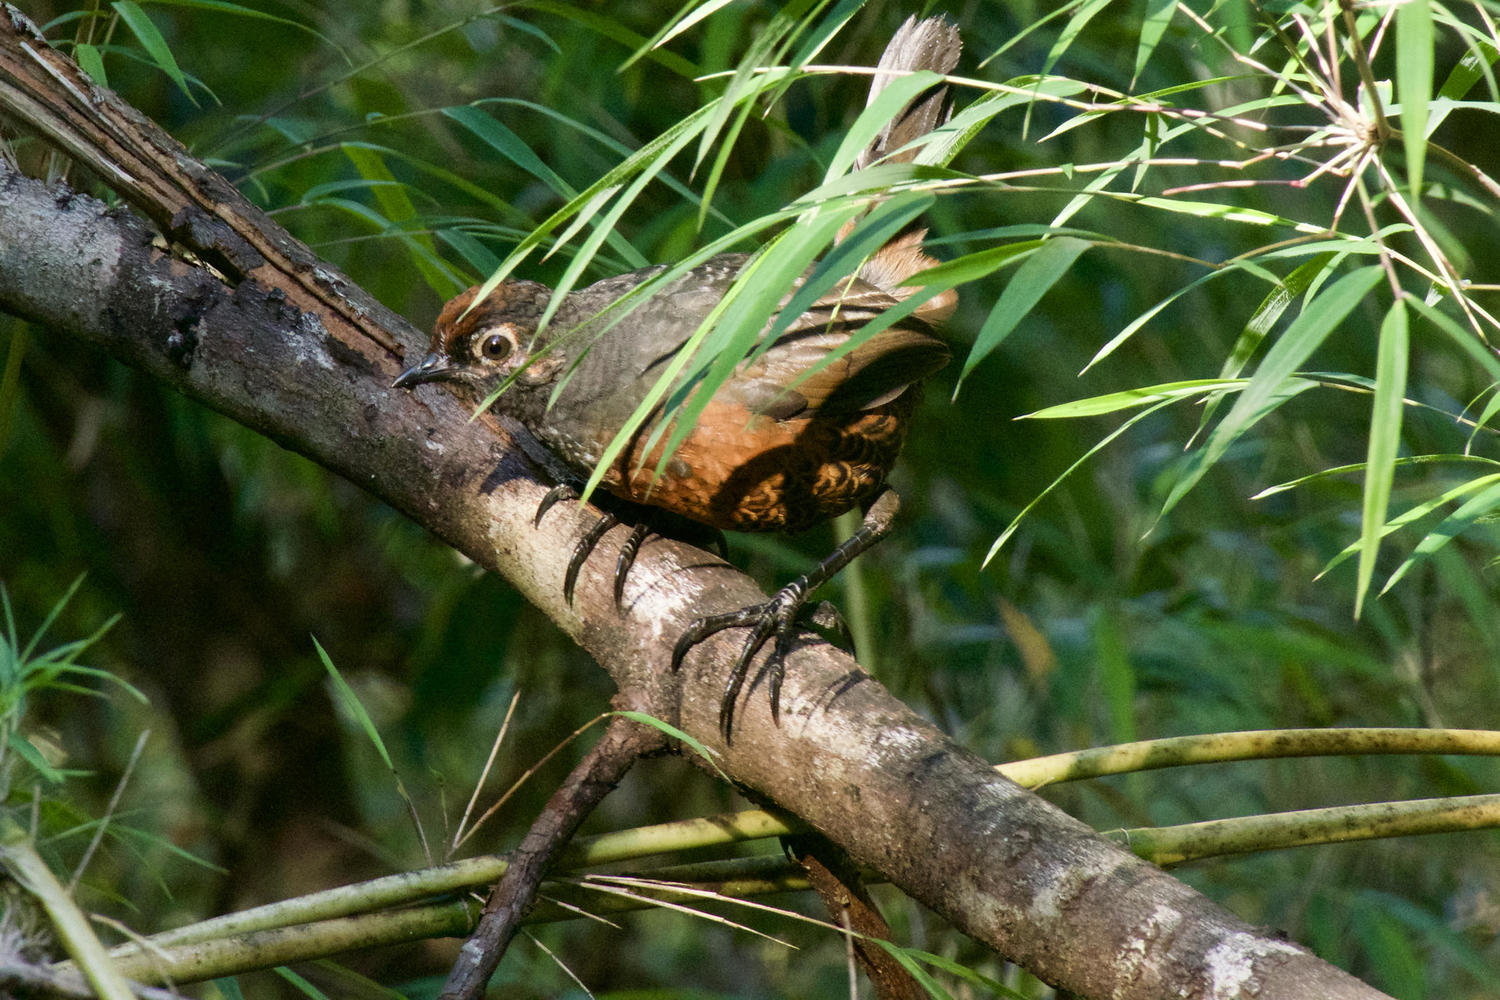 Birdlife in the Posada de Queulat forest